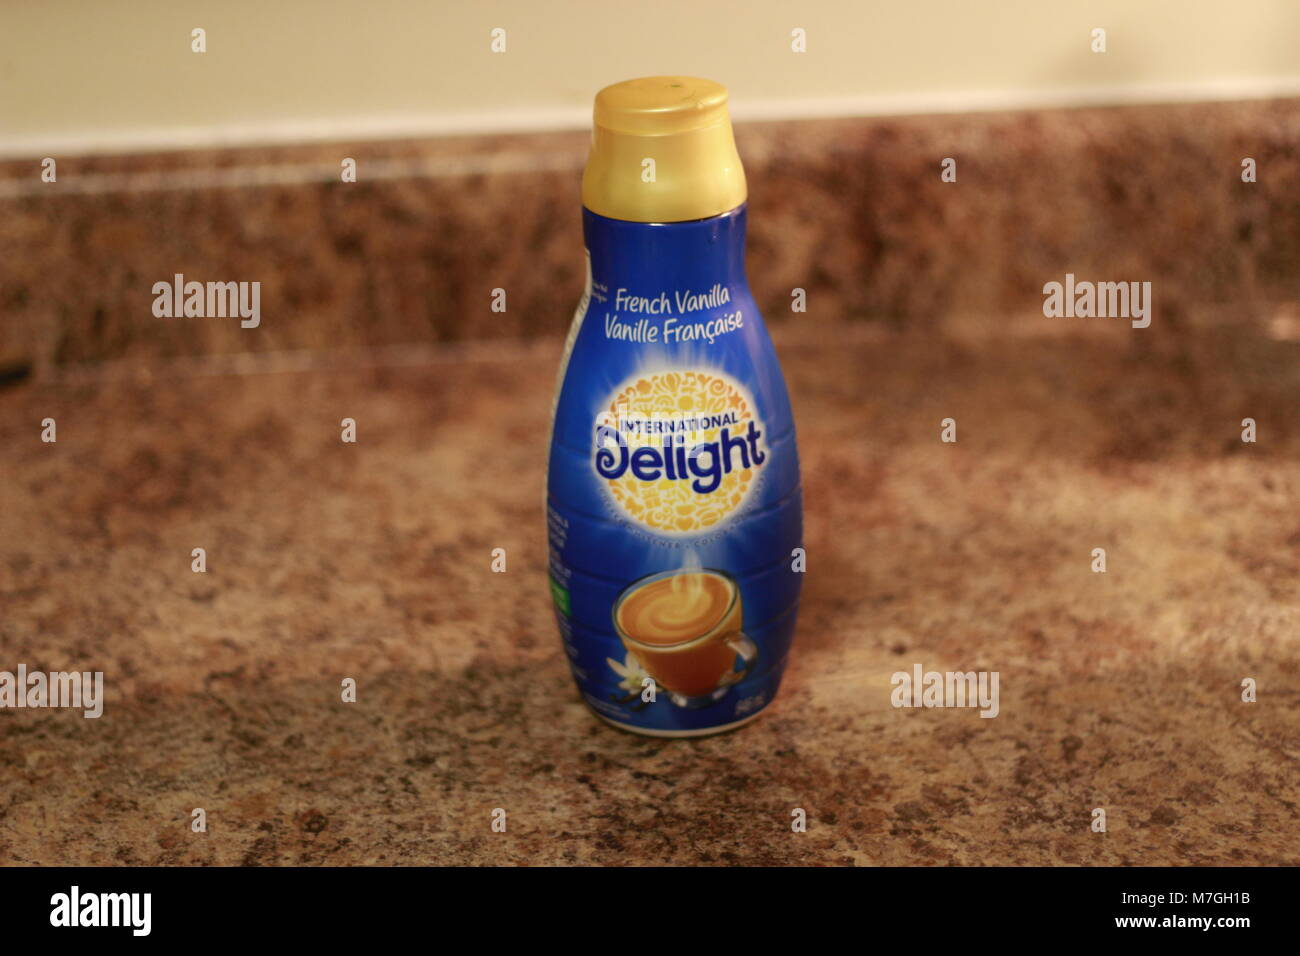 Bottle of Nestle French Vanilla Coffee Mate Nestle is a Switzerland based company founded in 1866 - Stock Image